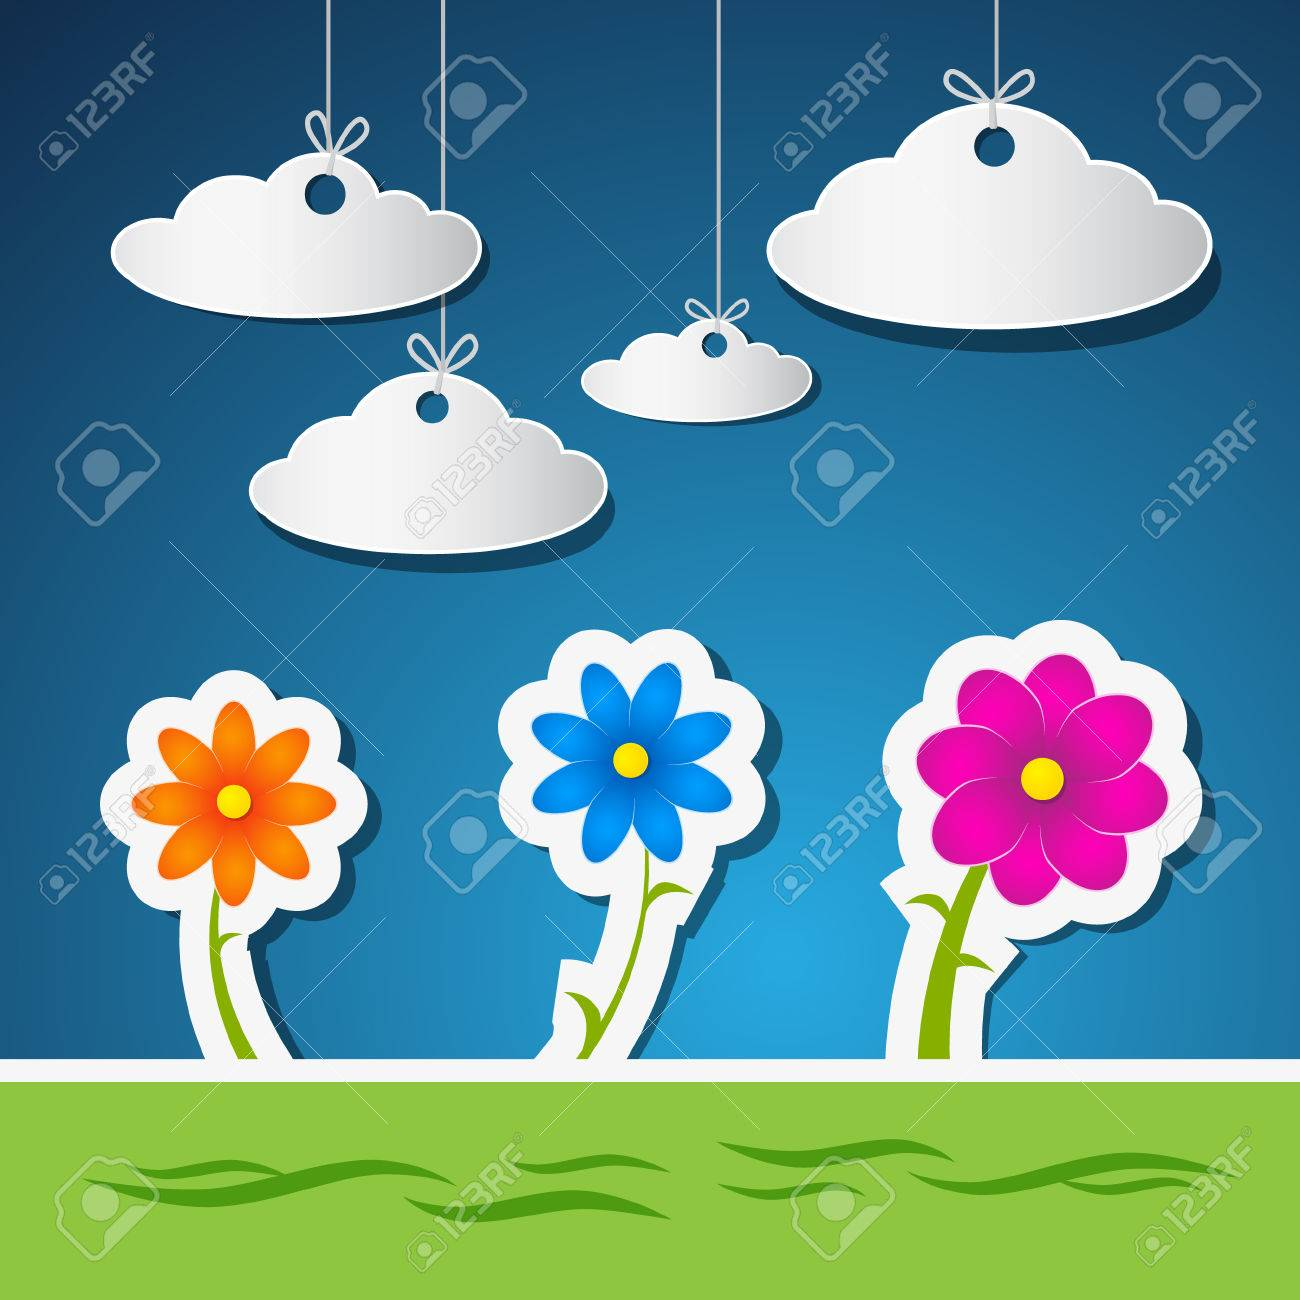 Flowers and Clouds Made From Paper With Blue Sky and Green Grass Stock Vector - 24603763